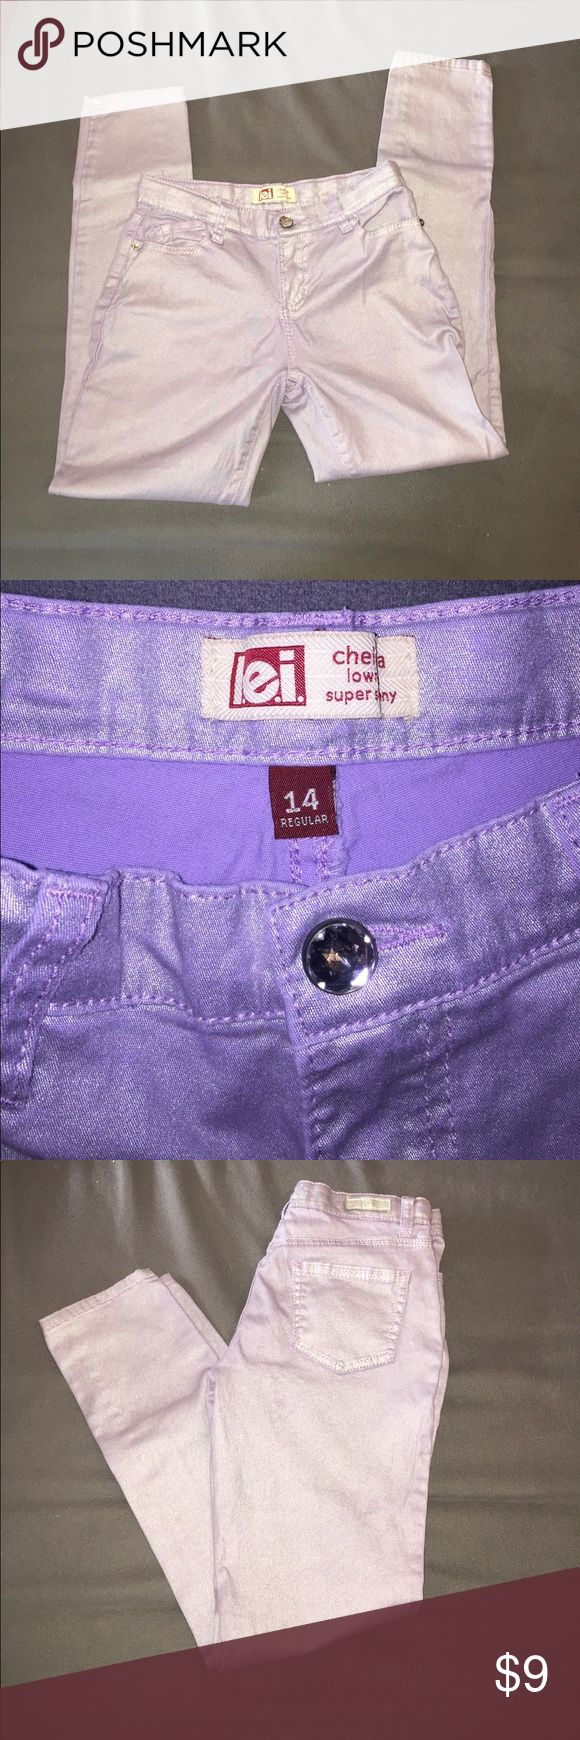 Light purple skinny jeans with sparkles Super cute skinny jeans. Smoke free home. In good condition. lei Bottoms Jeans